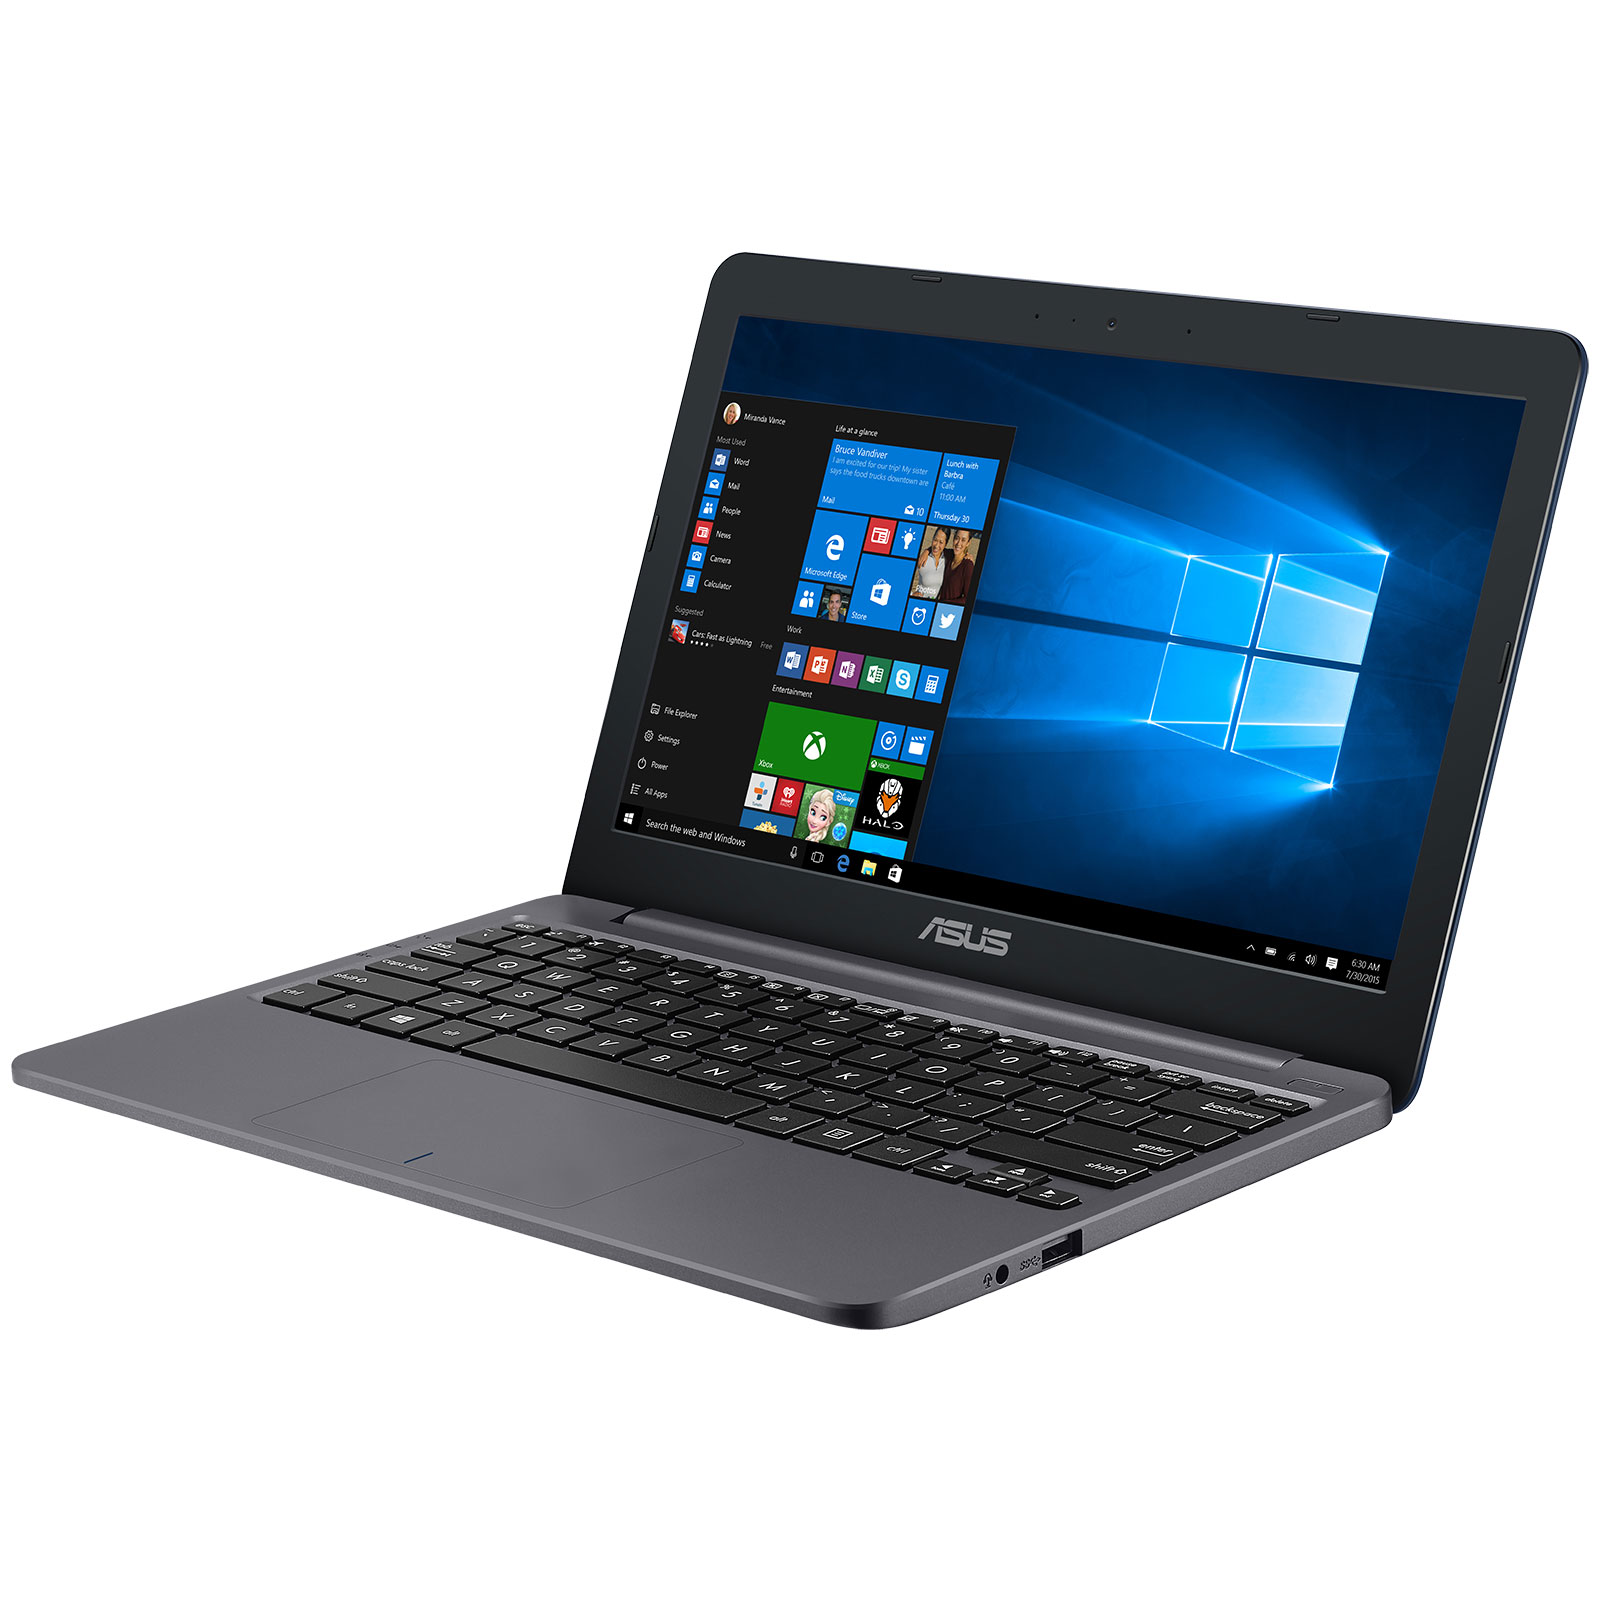 asus vivobook e12 e203na fd035t pc portable asus sur. Black Bedroom Furniture Sets. Home Design Ideas